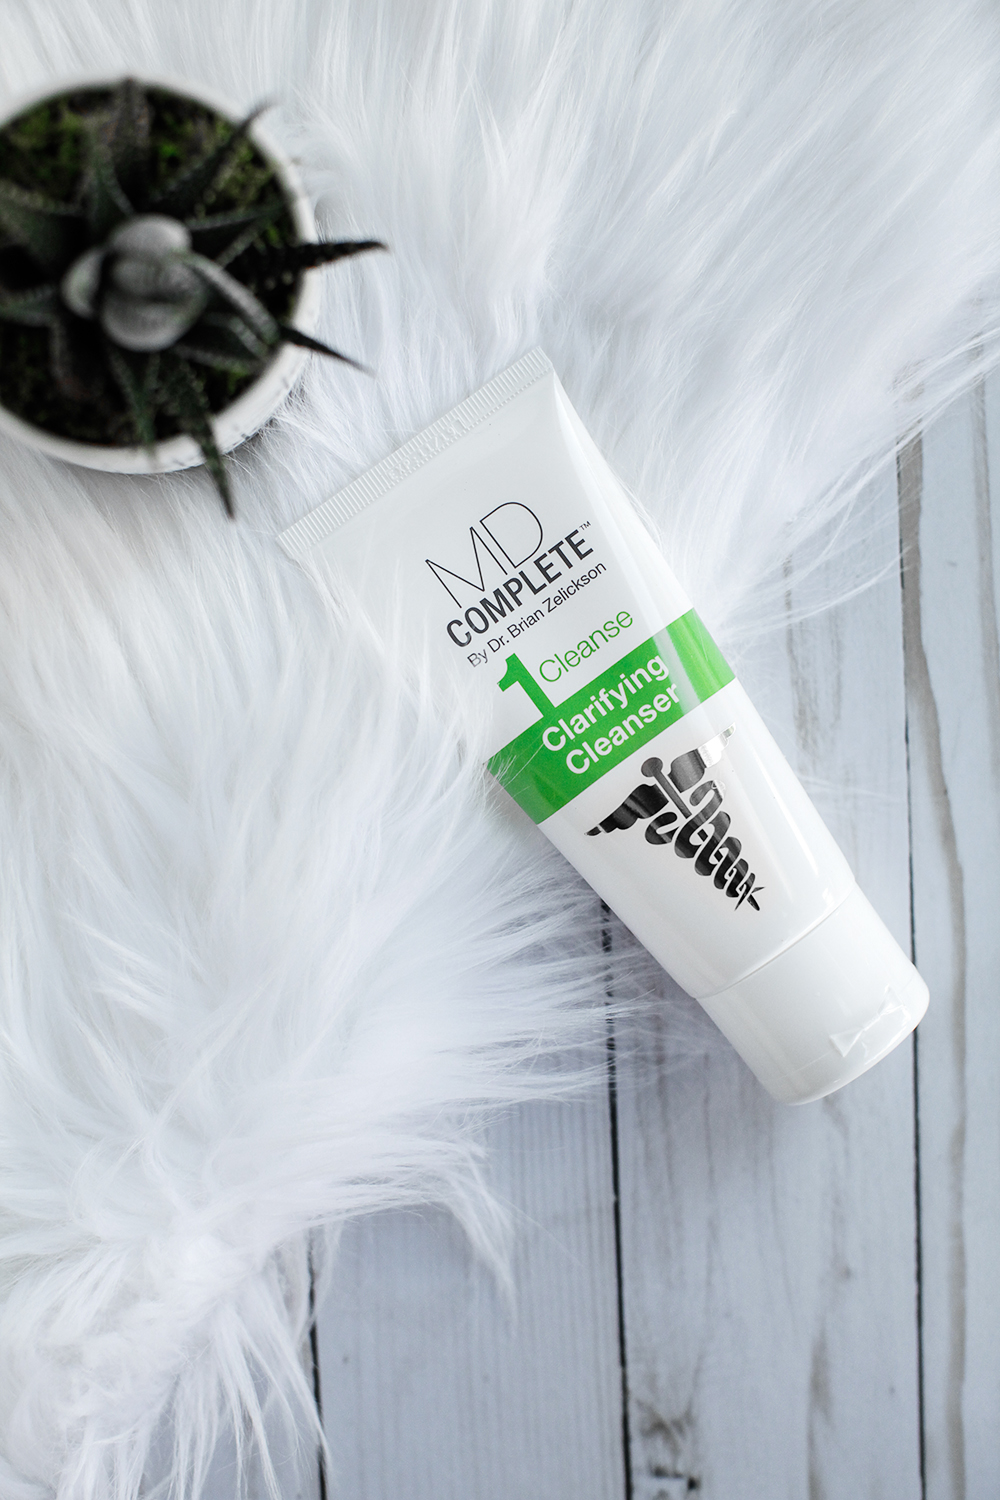 Clarifying cleanser for clear skin